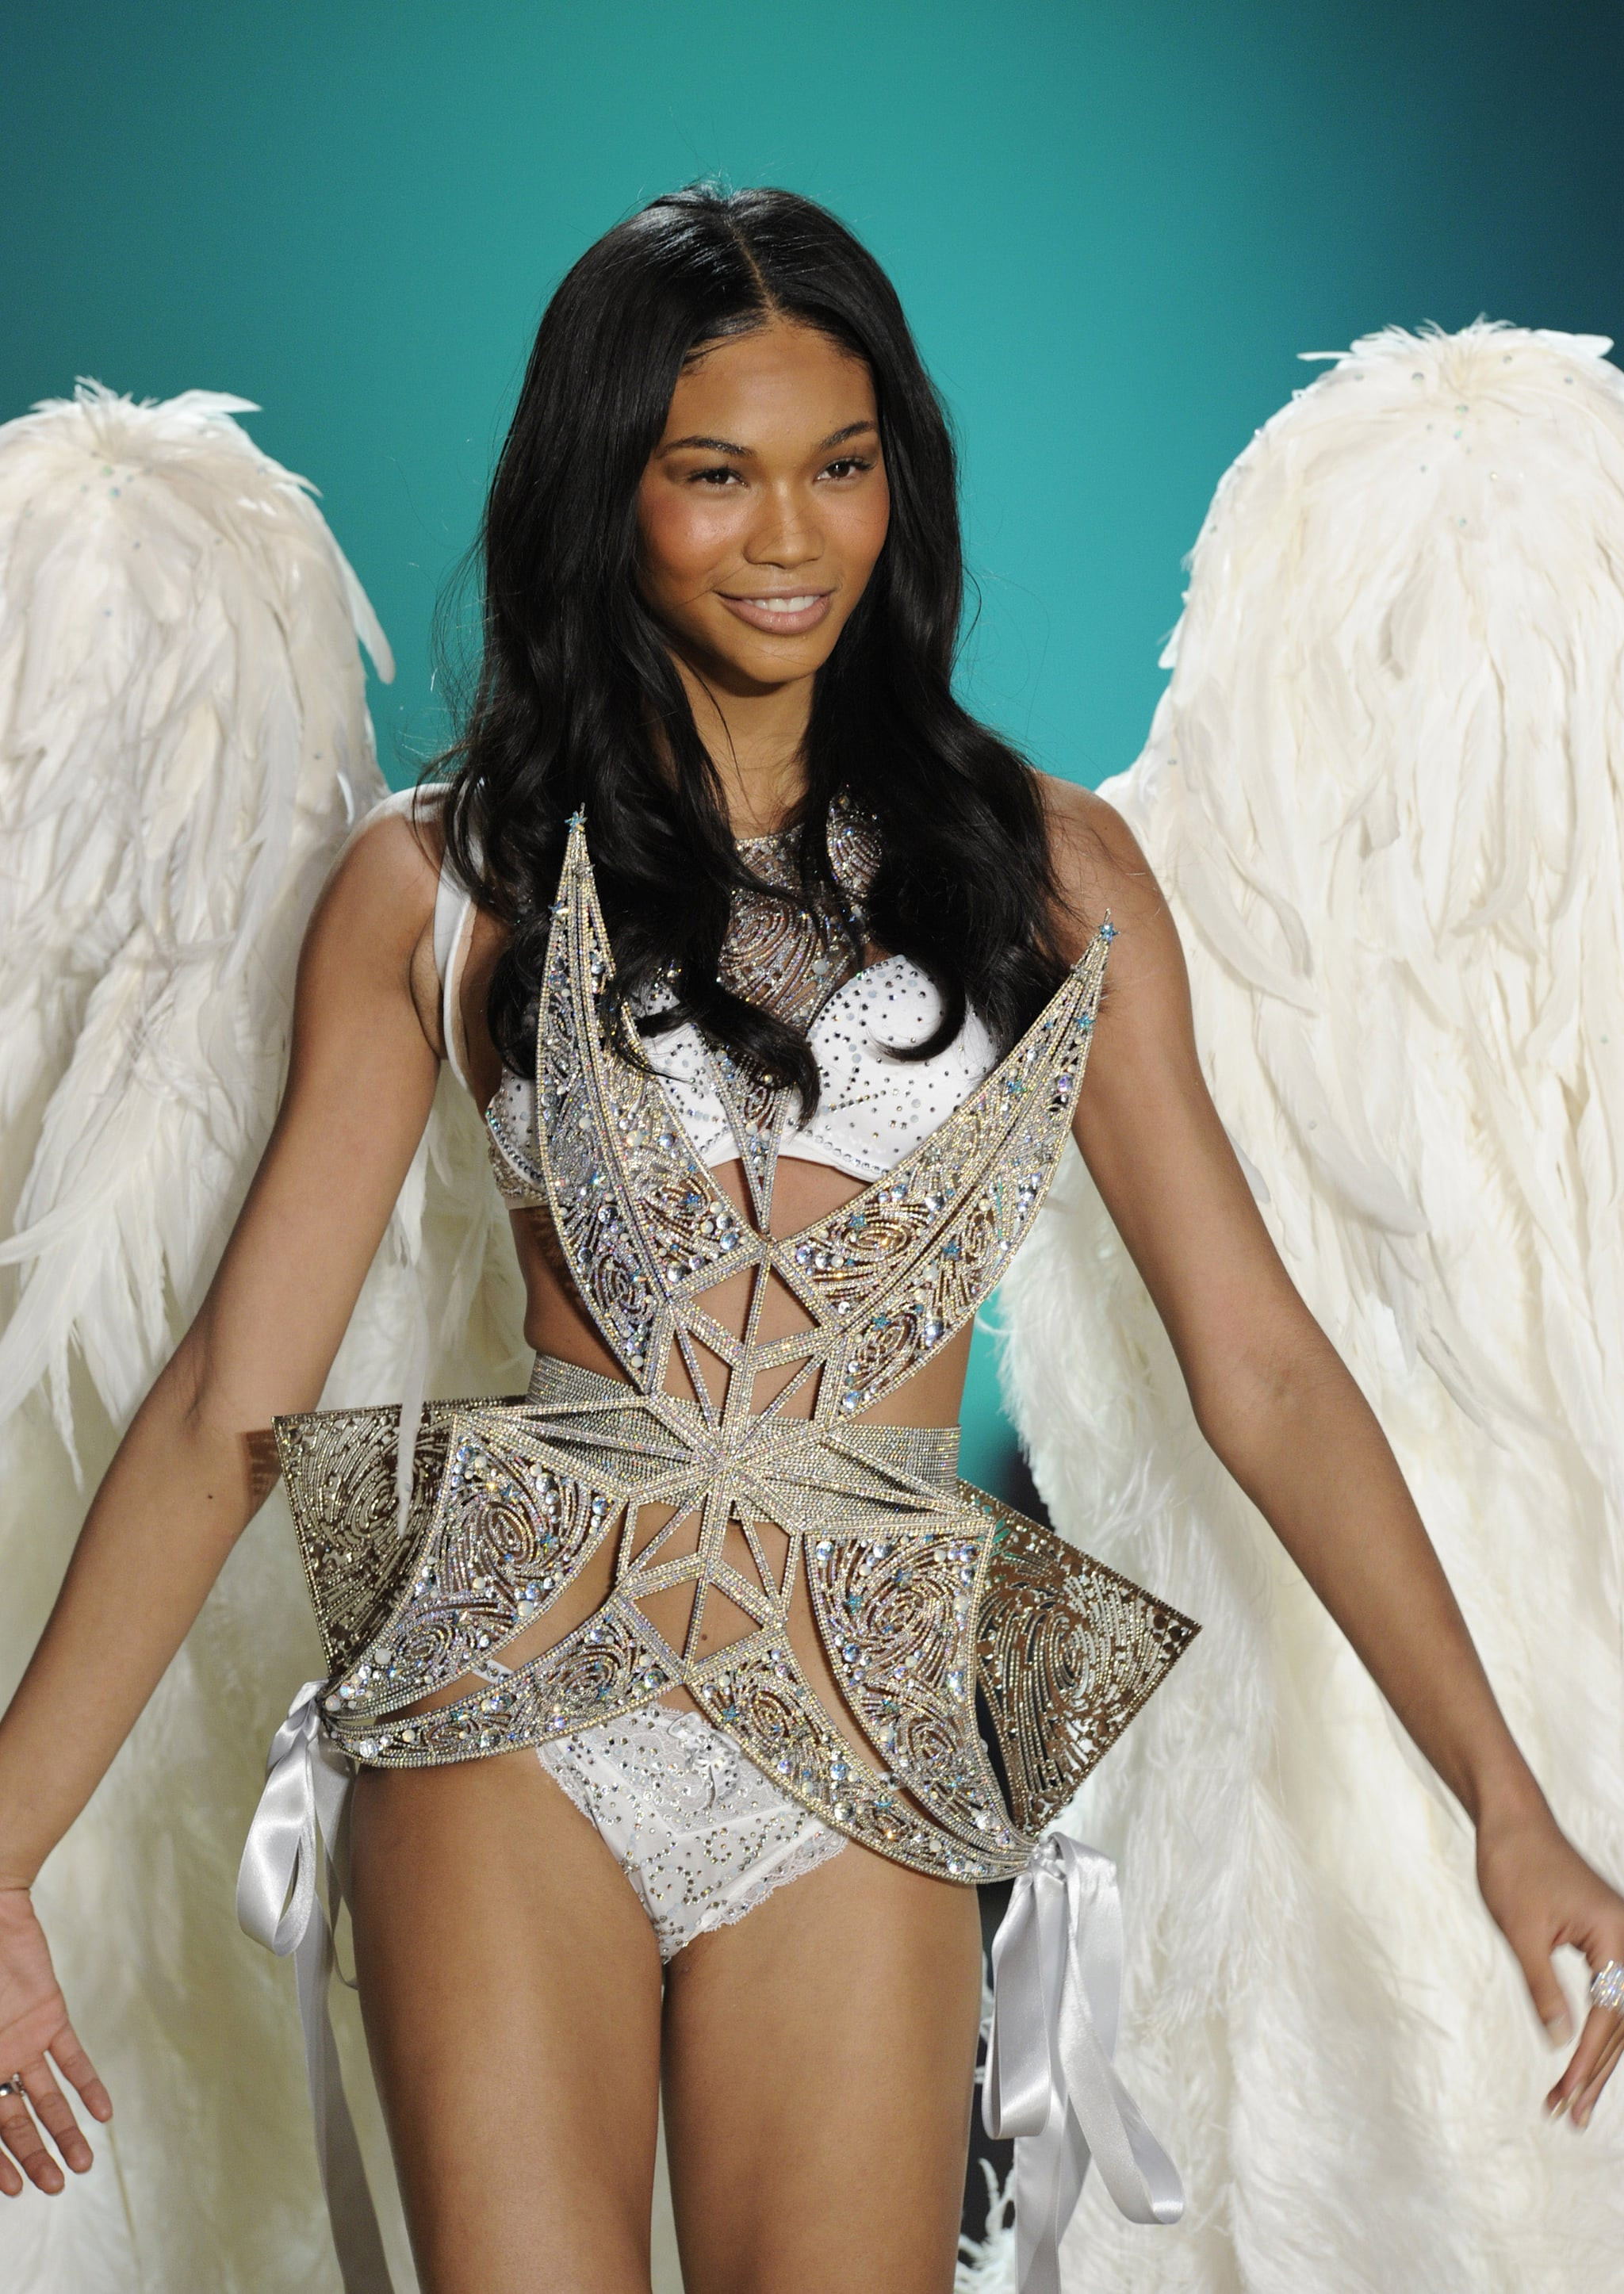 Chanel Iman walked the 2010 runway clad in crystals.